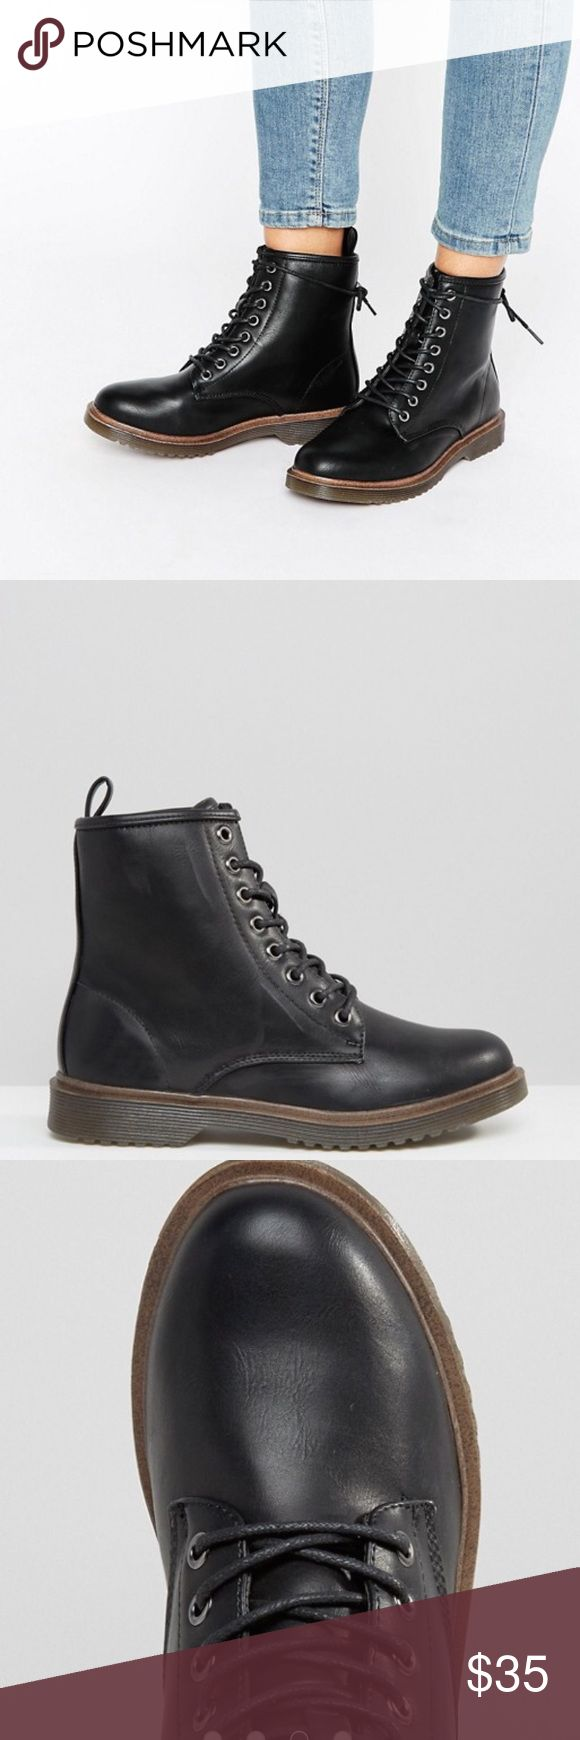 NWT New Look Lace Up Ankle Biker Boots SZ 11 NEW WITH TAGS. New Look Lace Up Ankle Biker Boots. Size 11 ASOS Shoes Combat & Moto Boots